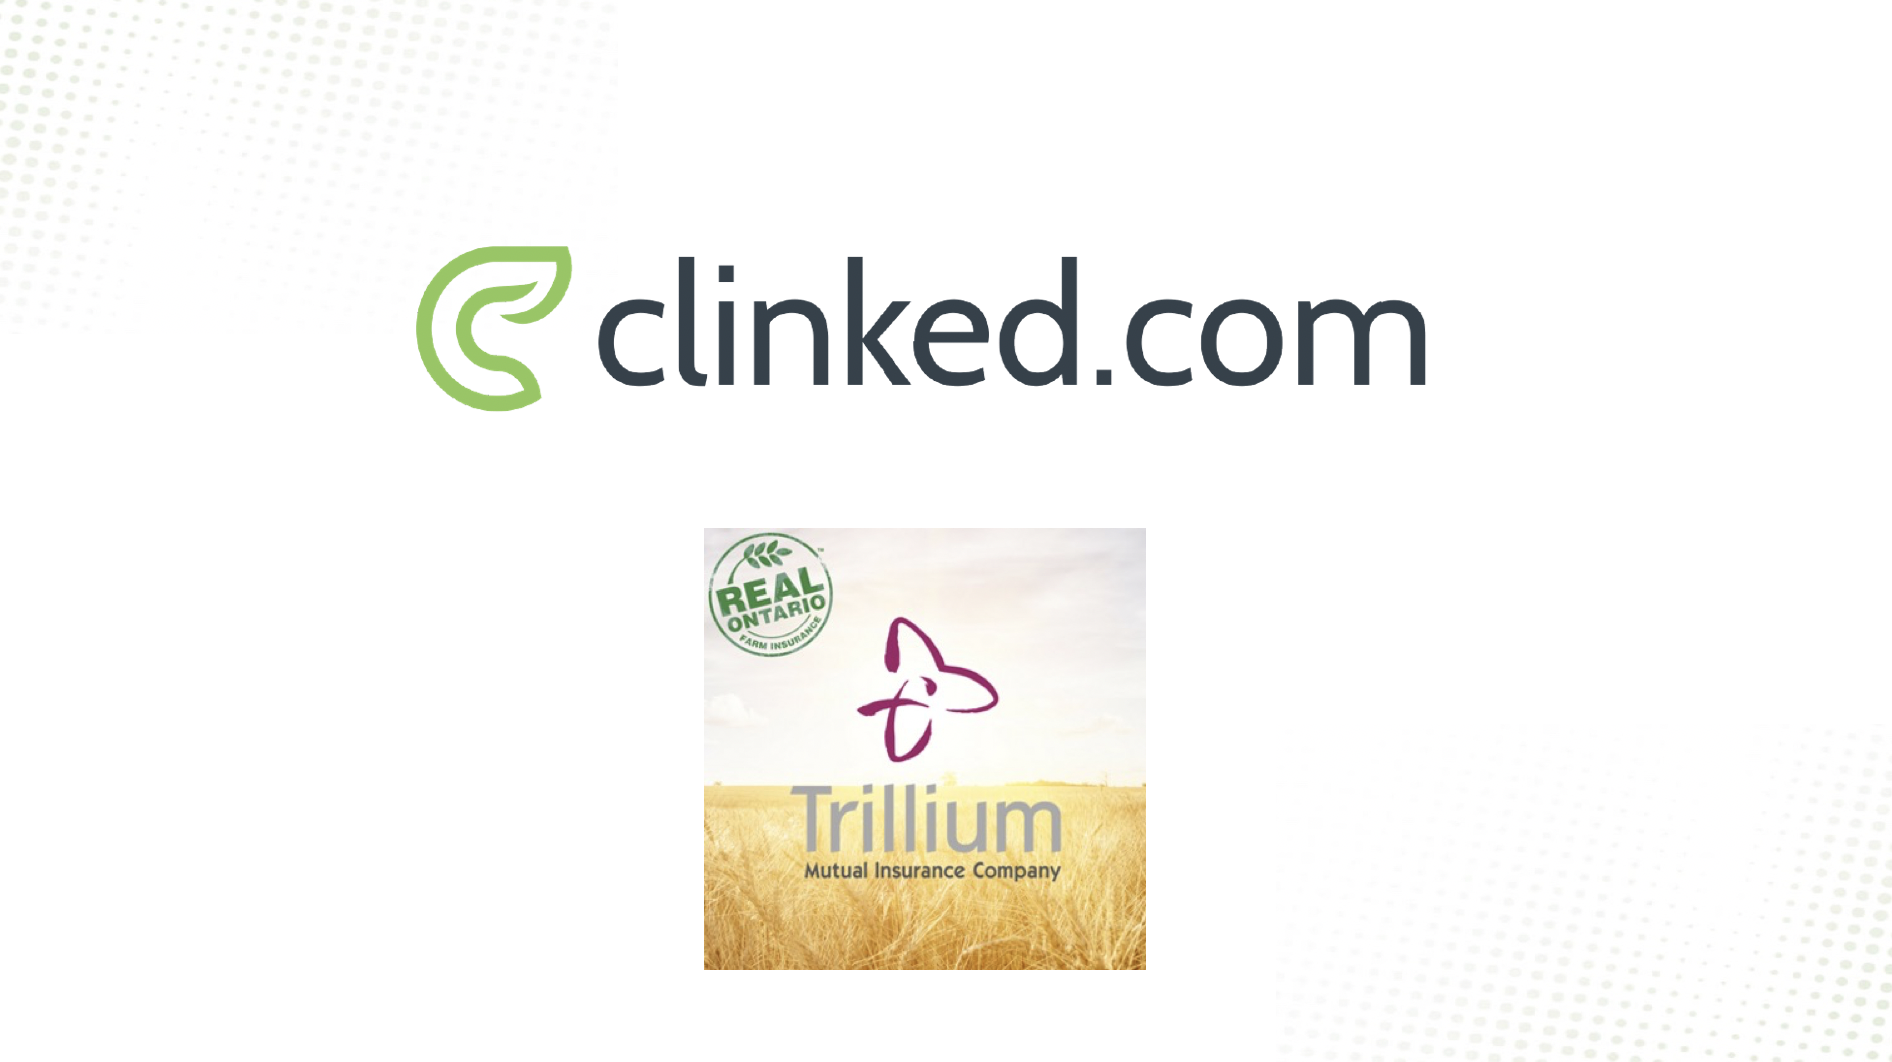 How does Trillium Mutual Insurance Company use Clinked to improve client communication?